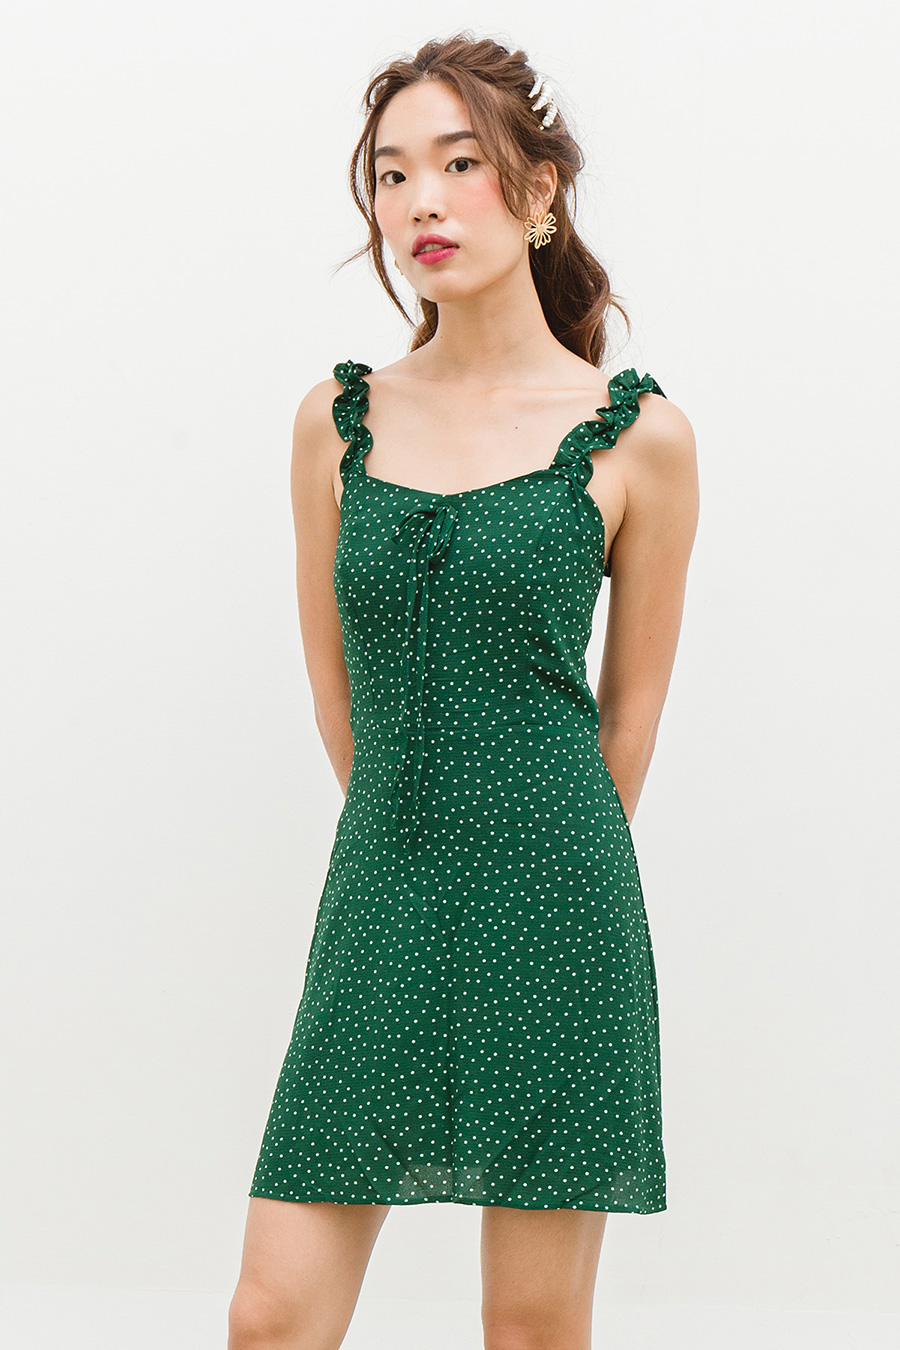 *BO* TREVINA DRESS - EMERALD DOTTY